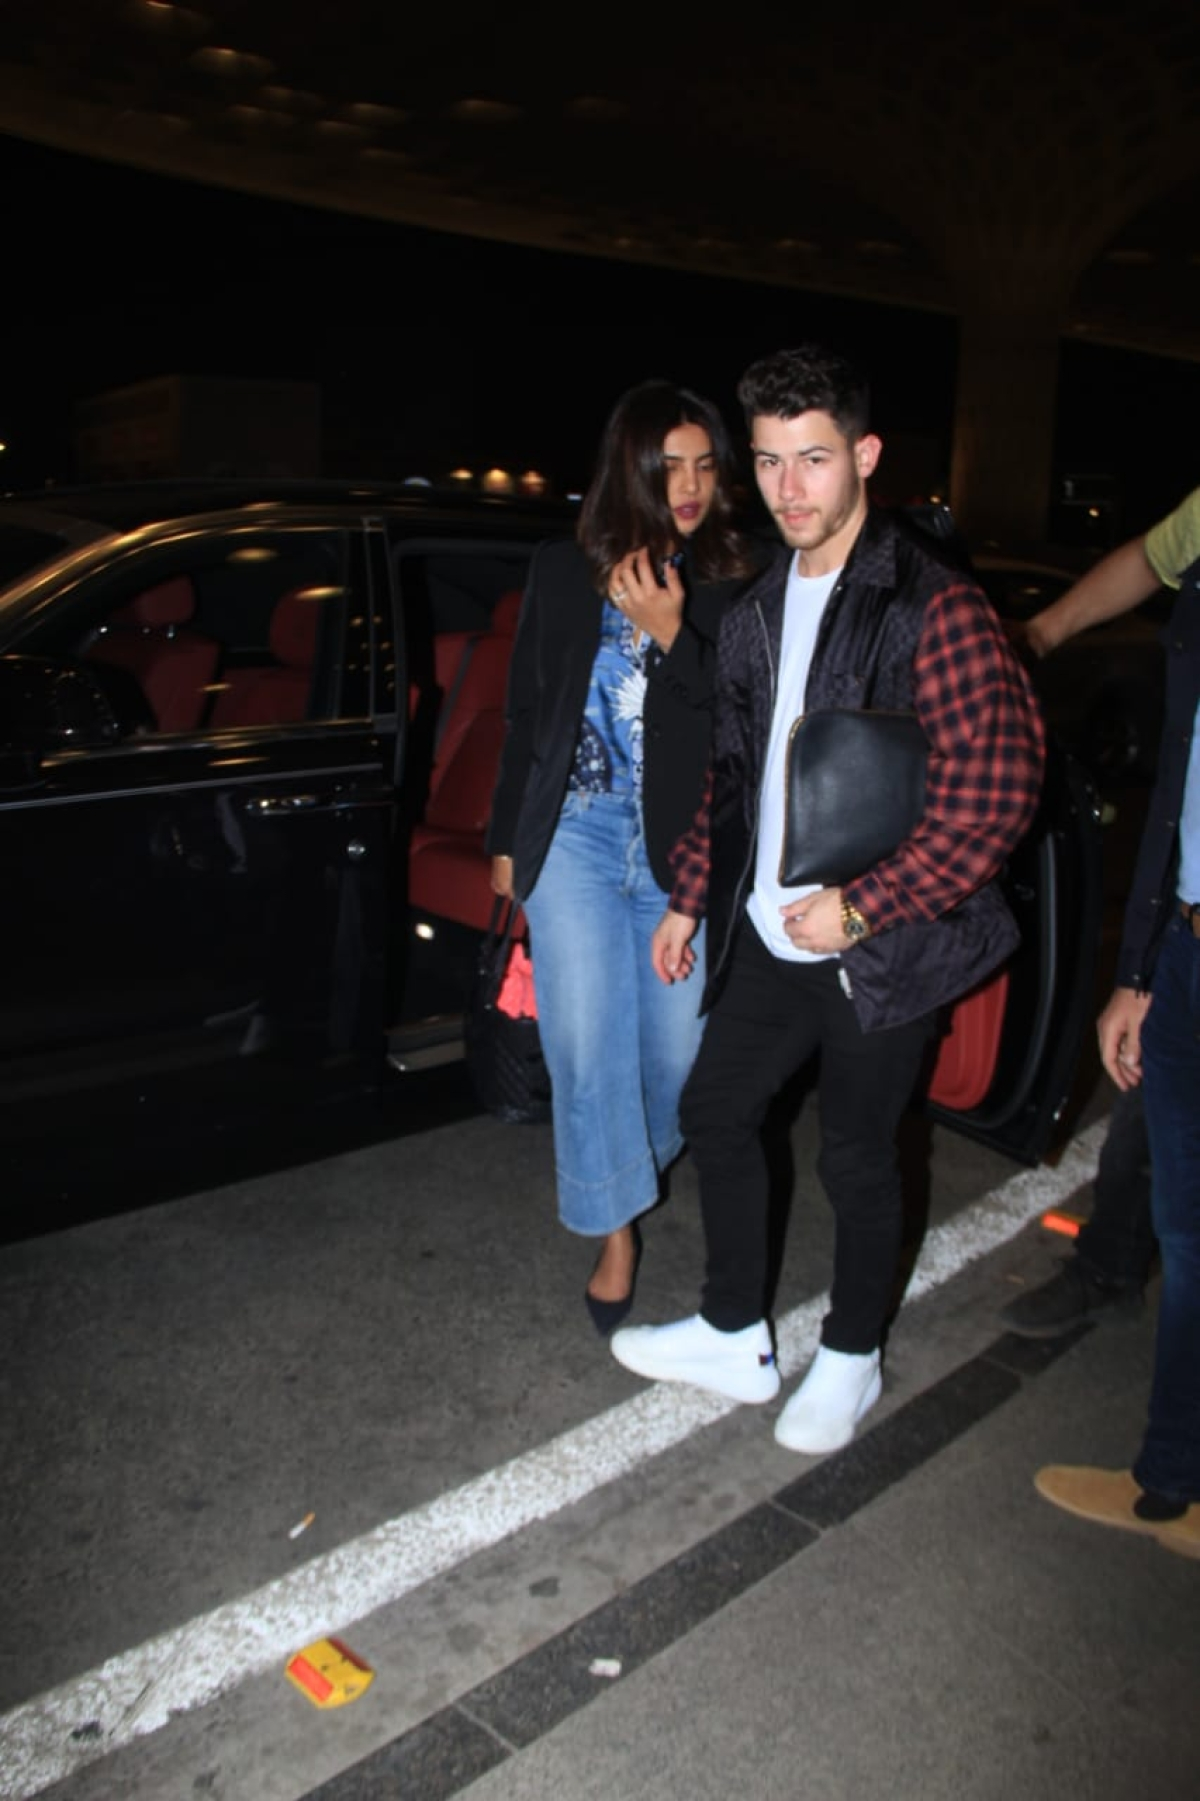 Priyanka Chopra and Nick Jonas at the airport